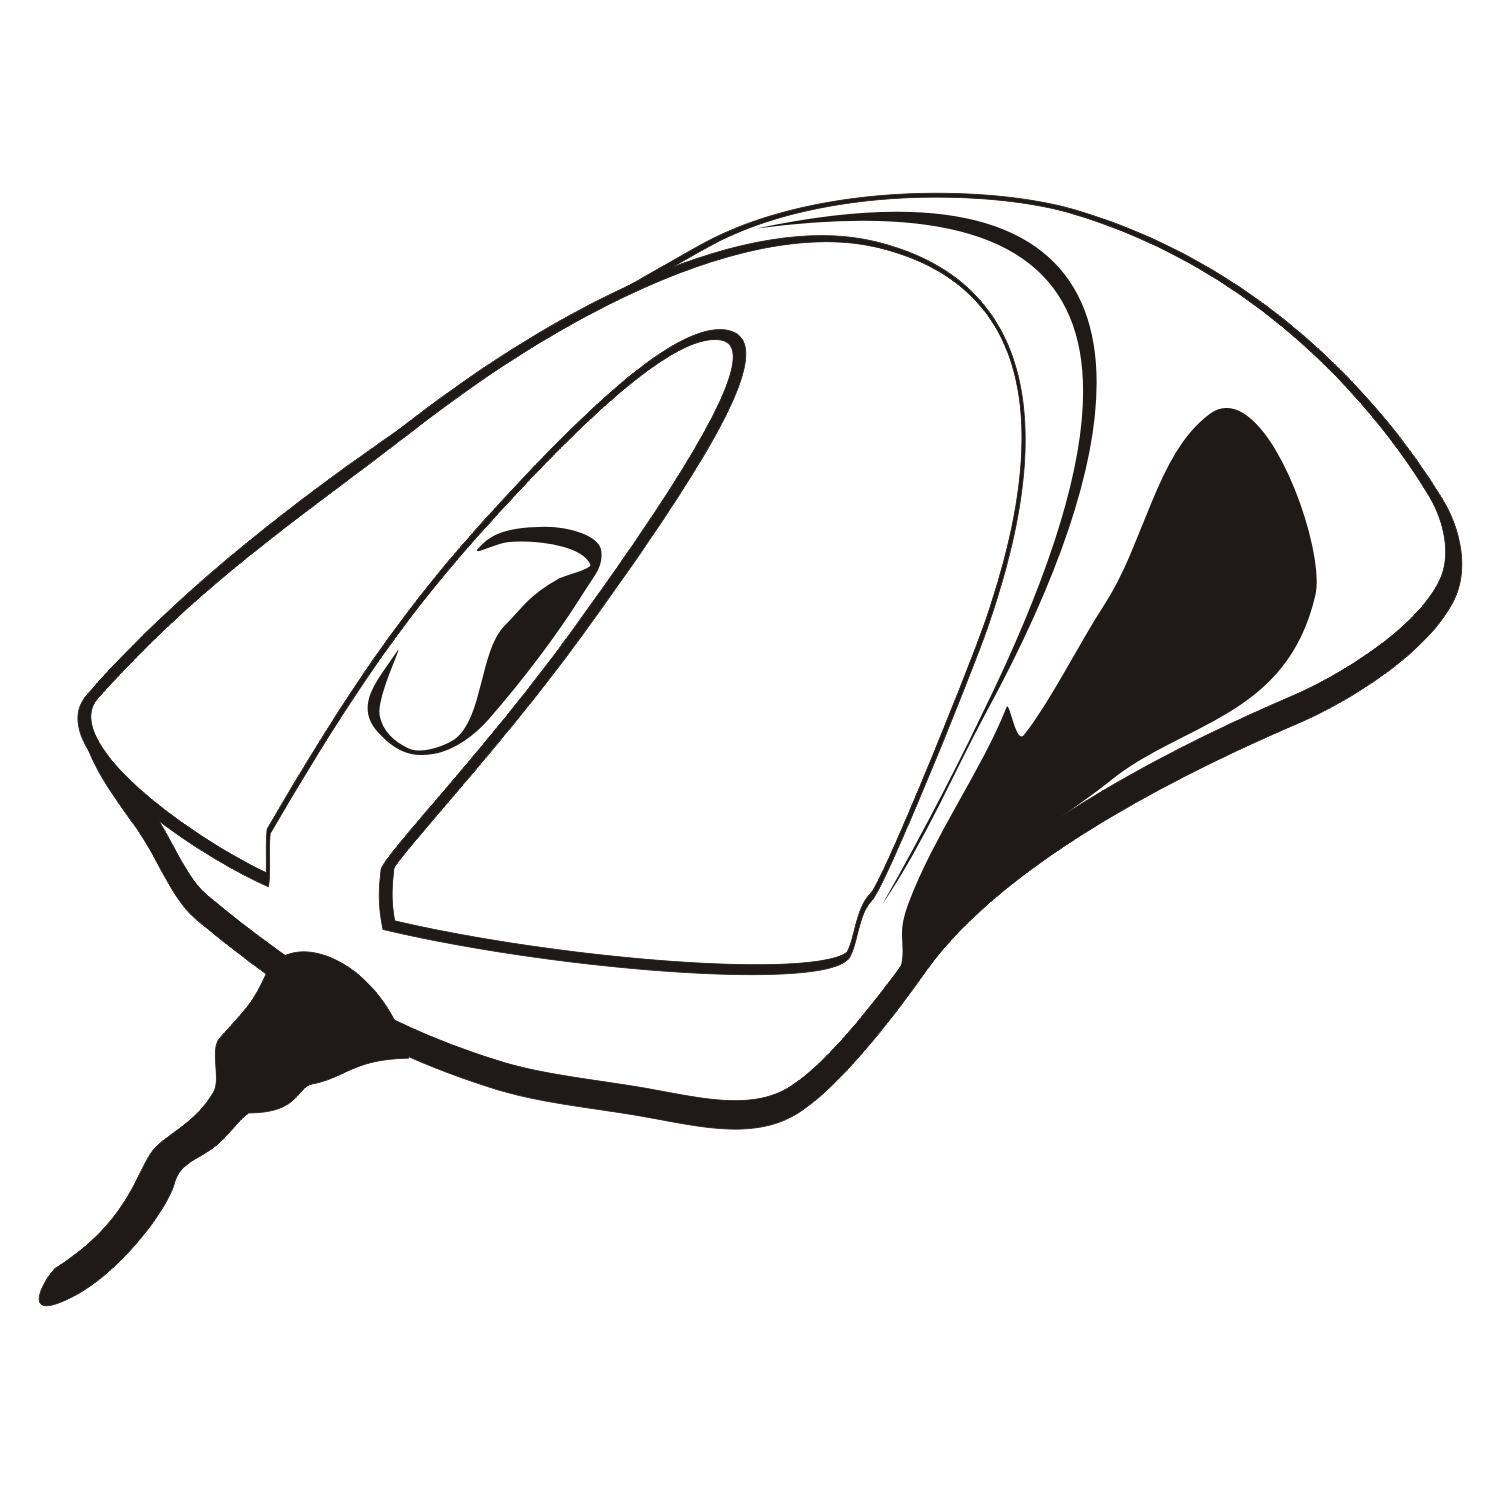 Free Computer Mouse Picture, Download Free Clip Art, Free Clip Art.